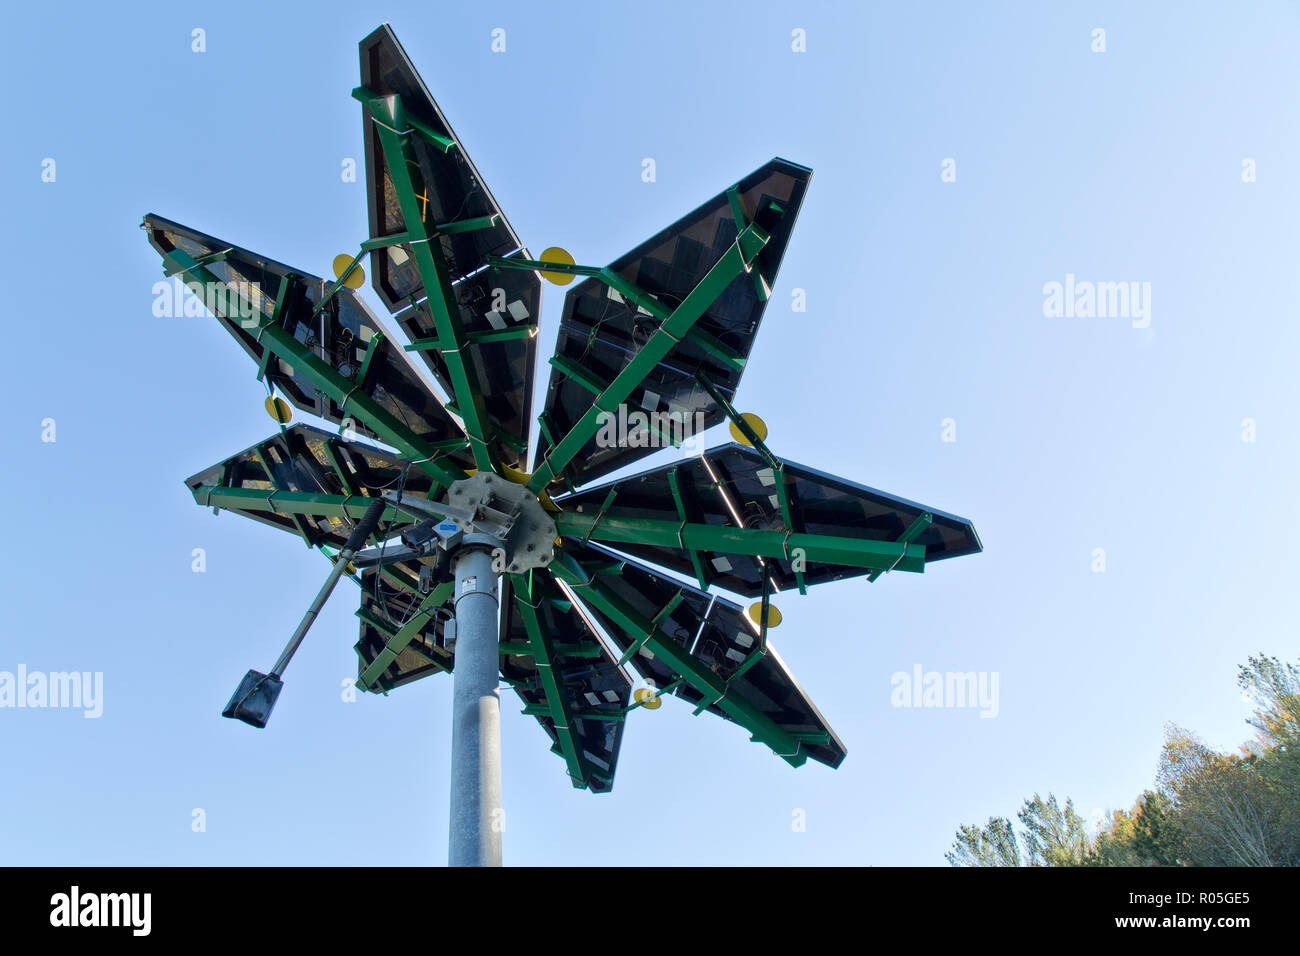 Solar Array, identified as 'Solar Photovoltaic Flair'  measuring 17 ft. diameter, weighing approx. 1200 lbs., Electric Vehicle Charge Station. Stock Photo